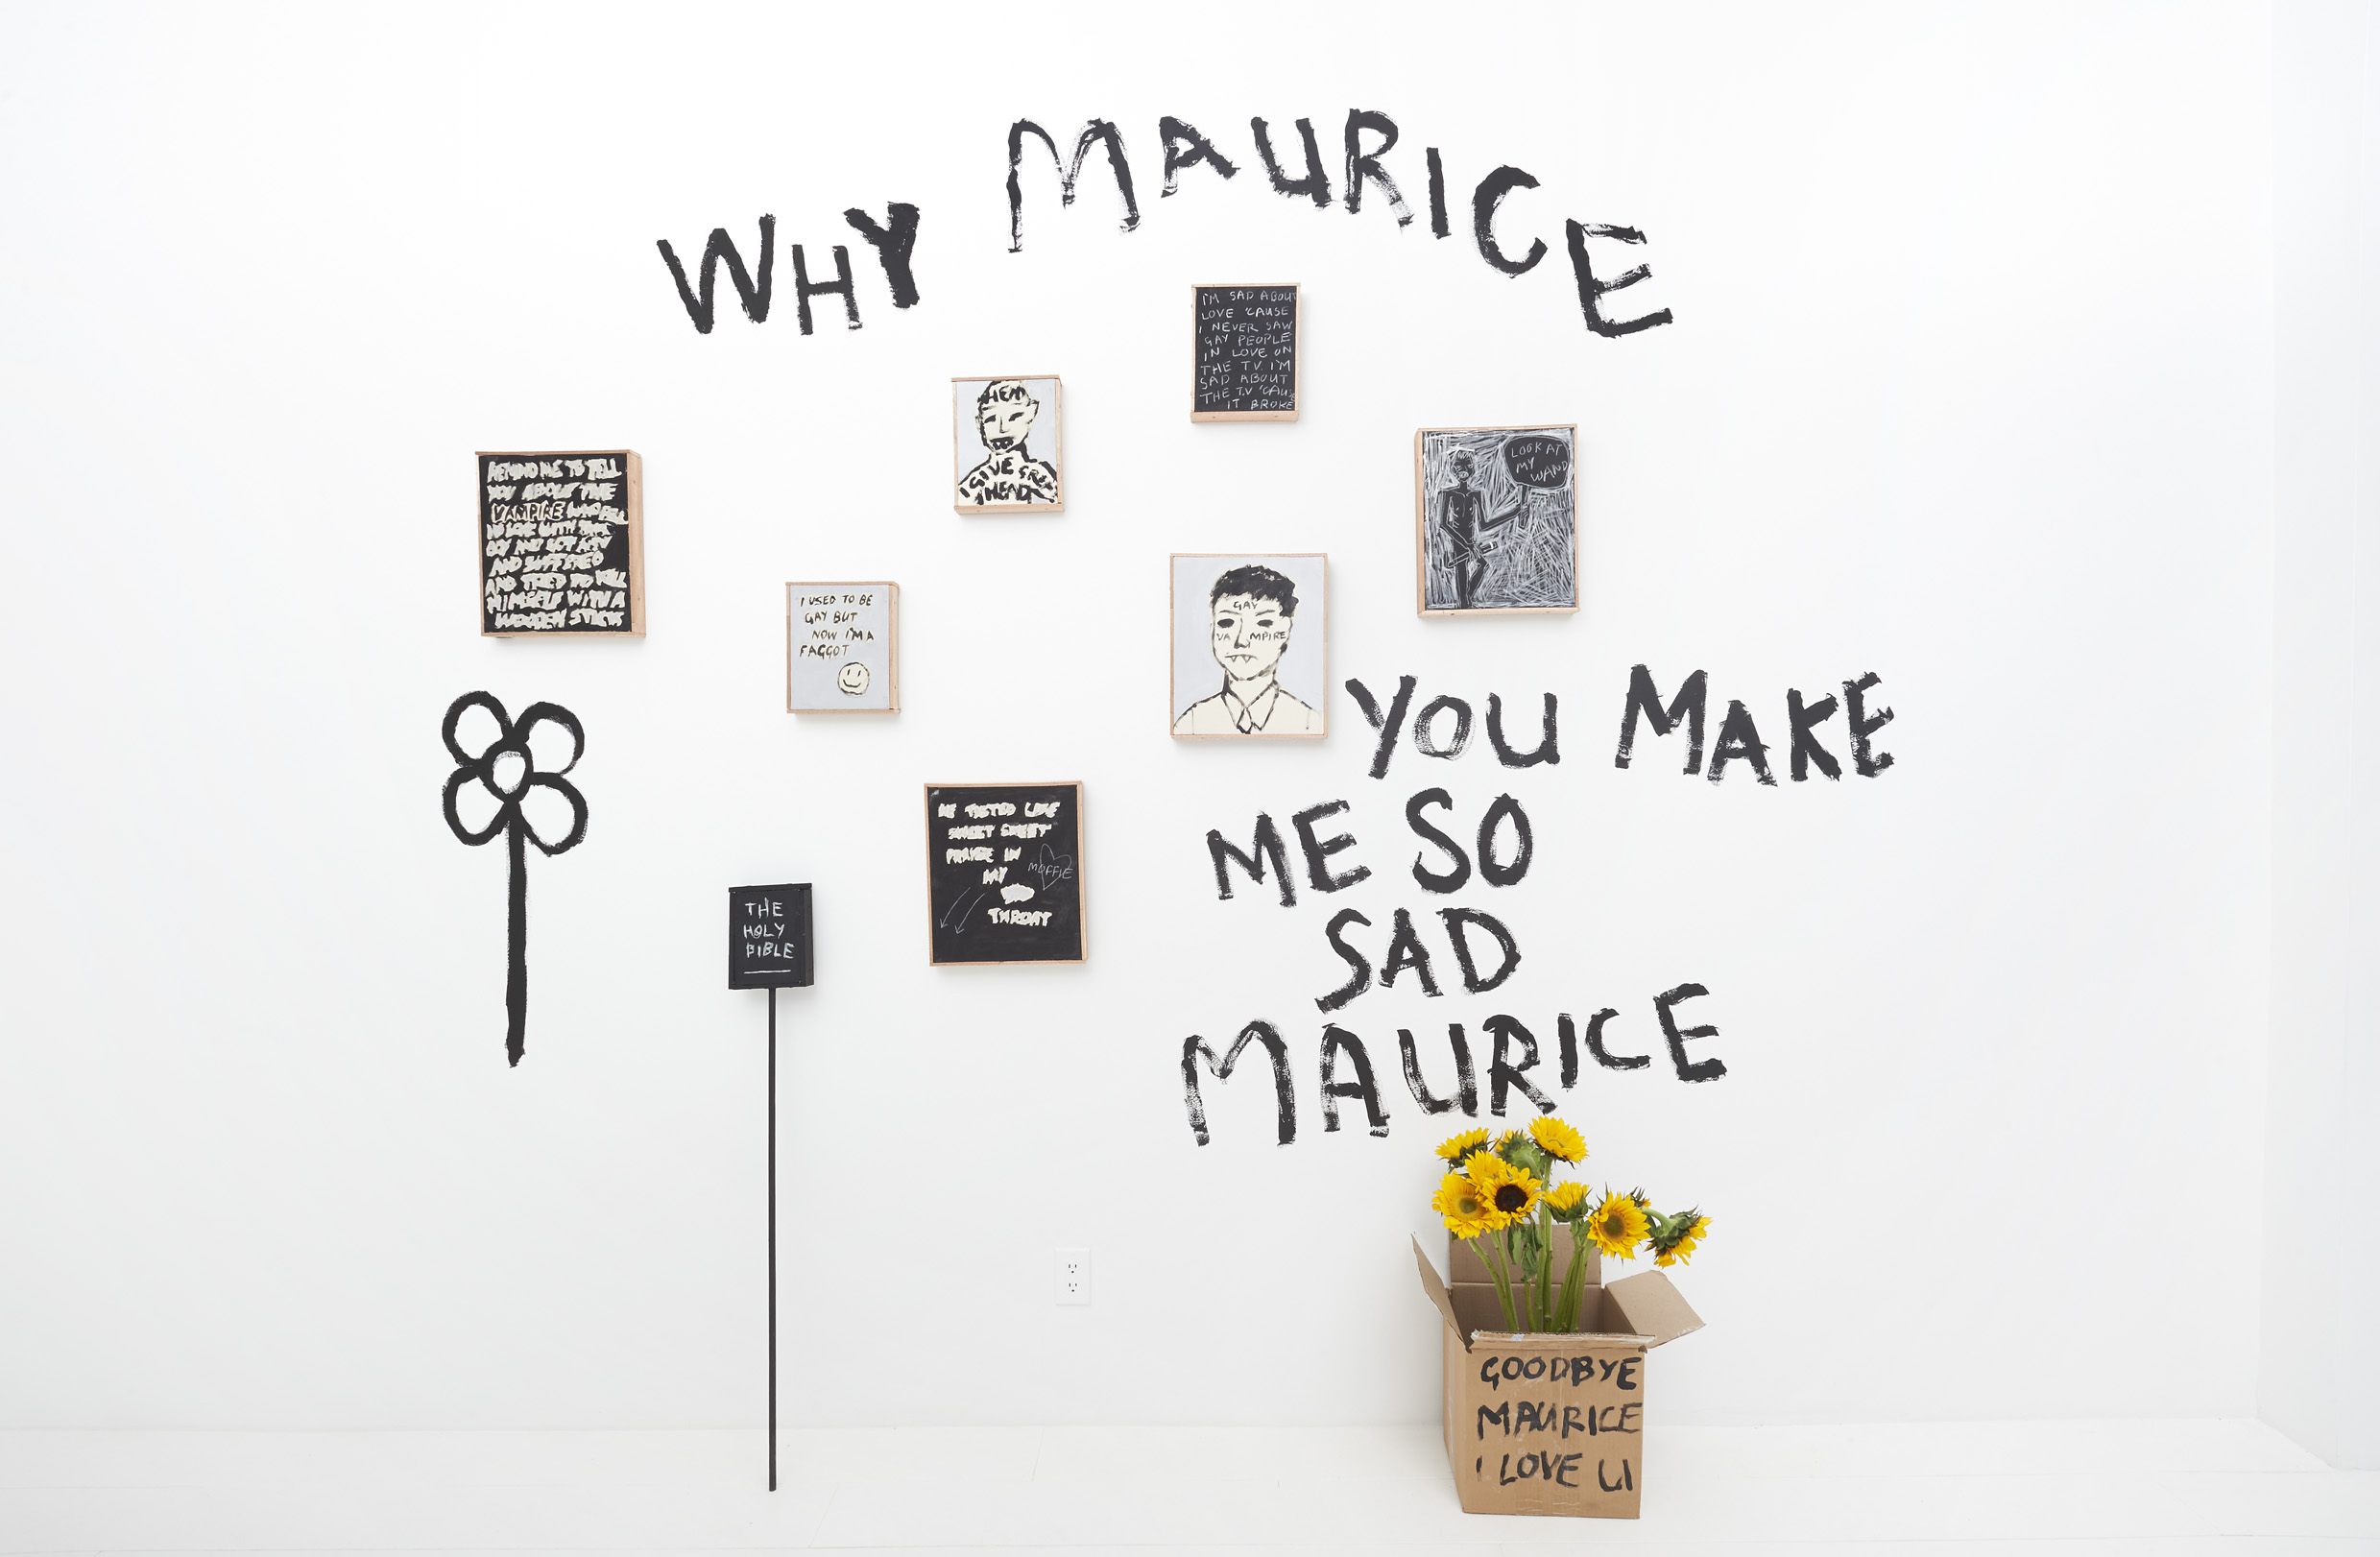 Installation:  Why Maurice ,   by Brett Seiler   in  Multiplicities Vol.1: Continuous Unknowing , curated by Natasha Becker, including work by Blake Daniels, Helina Metaferia, and Brett Seiler, November, 2018; exhibition installation. Photos by Masaki Hori Photography.